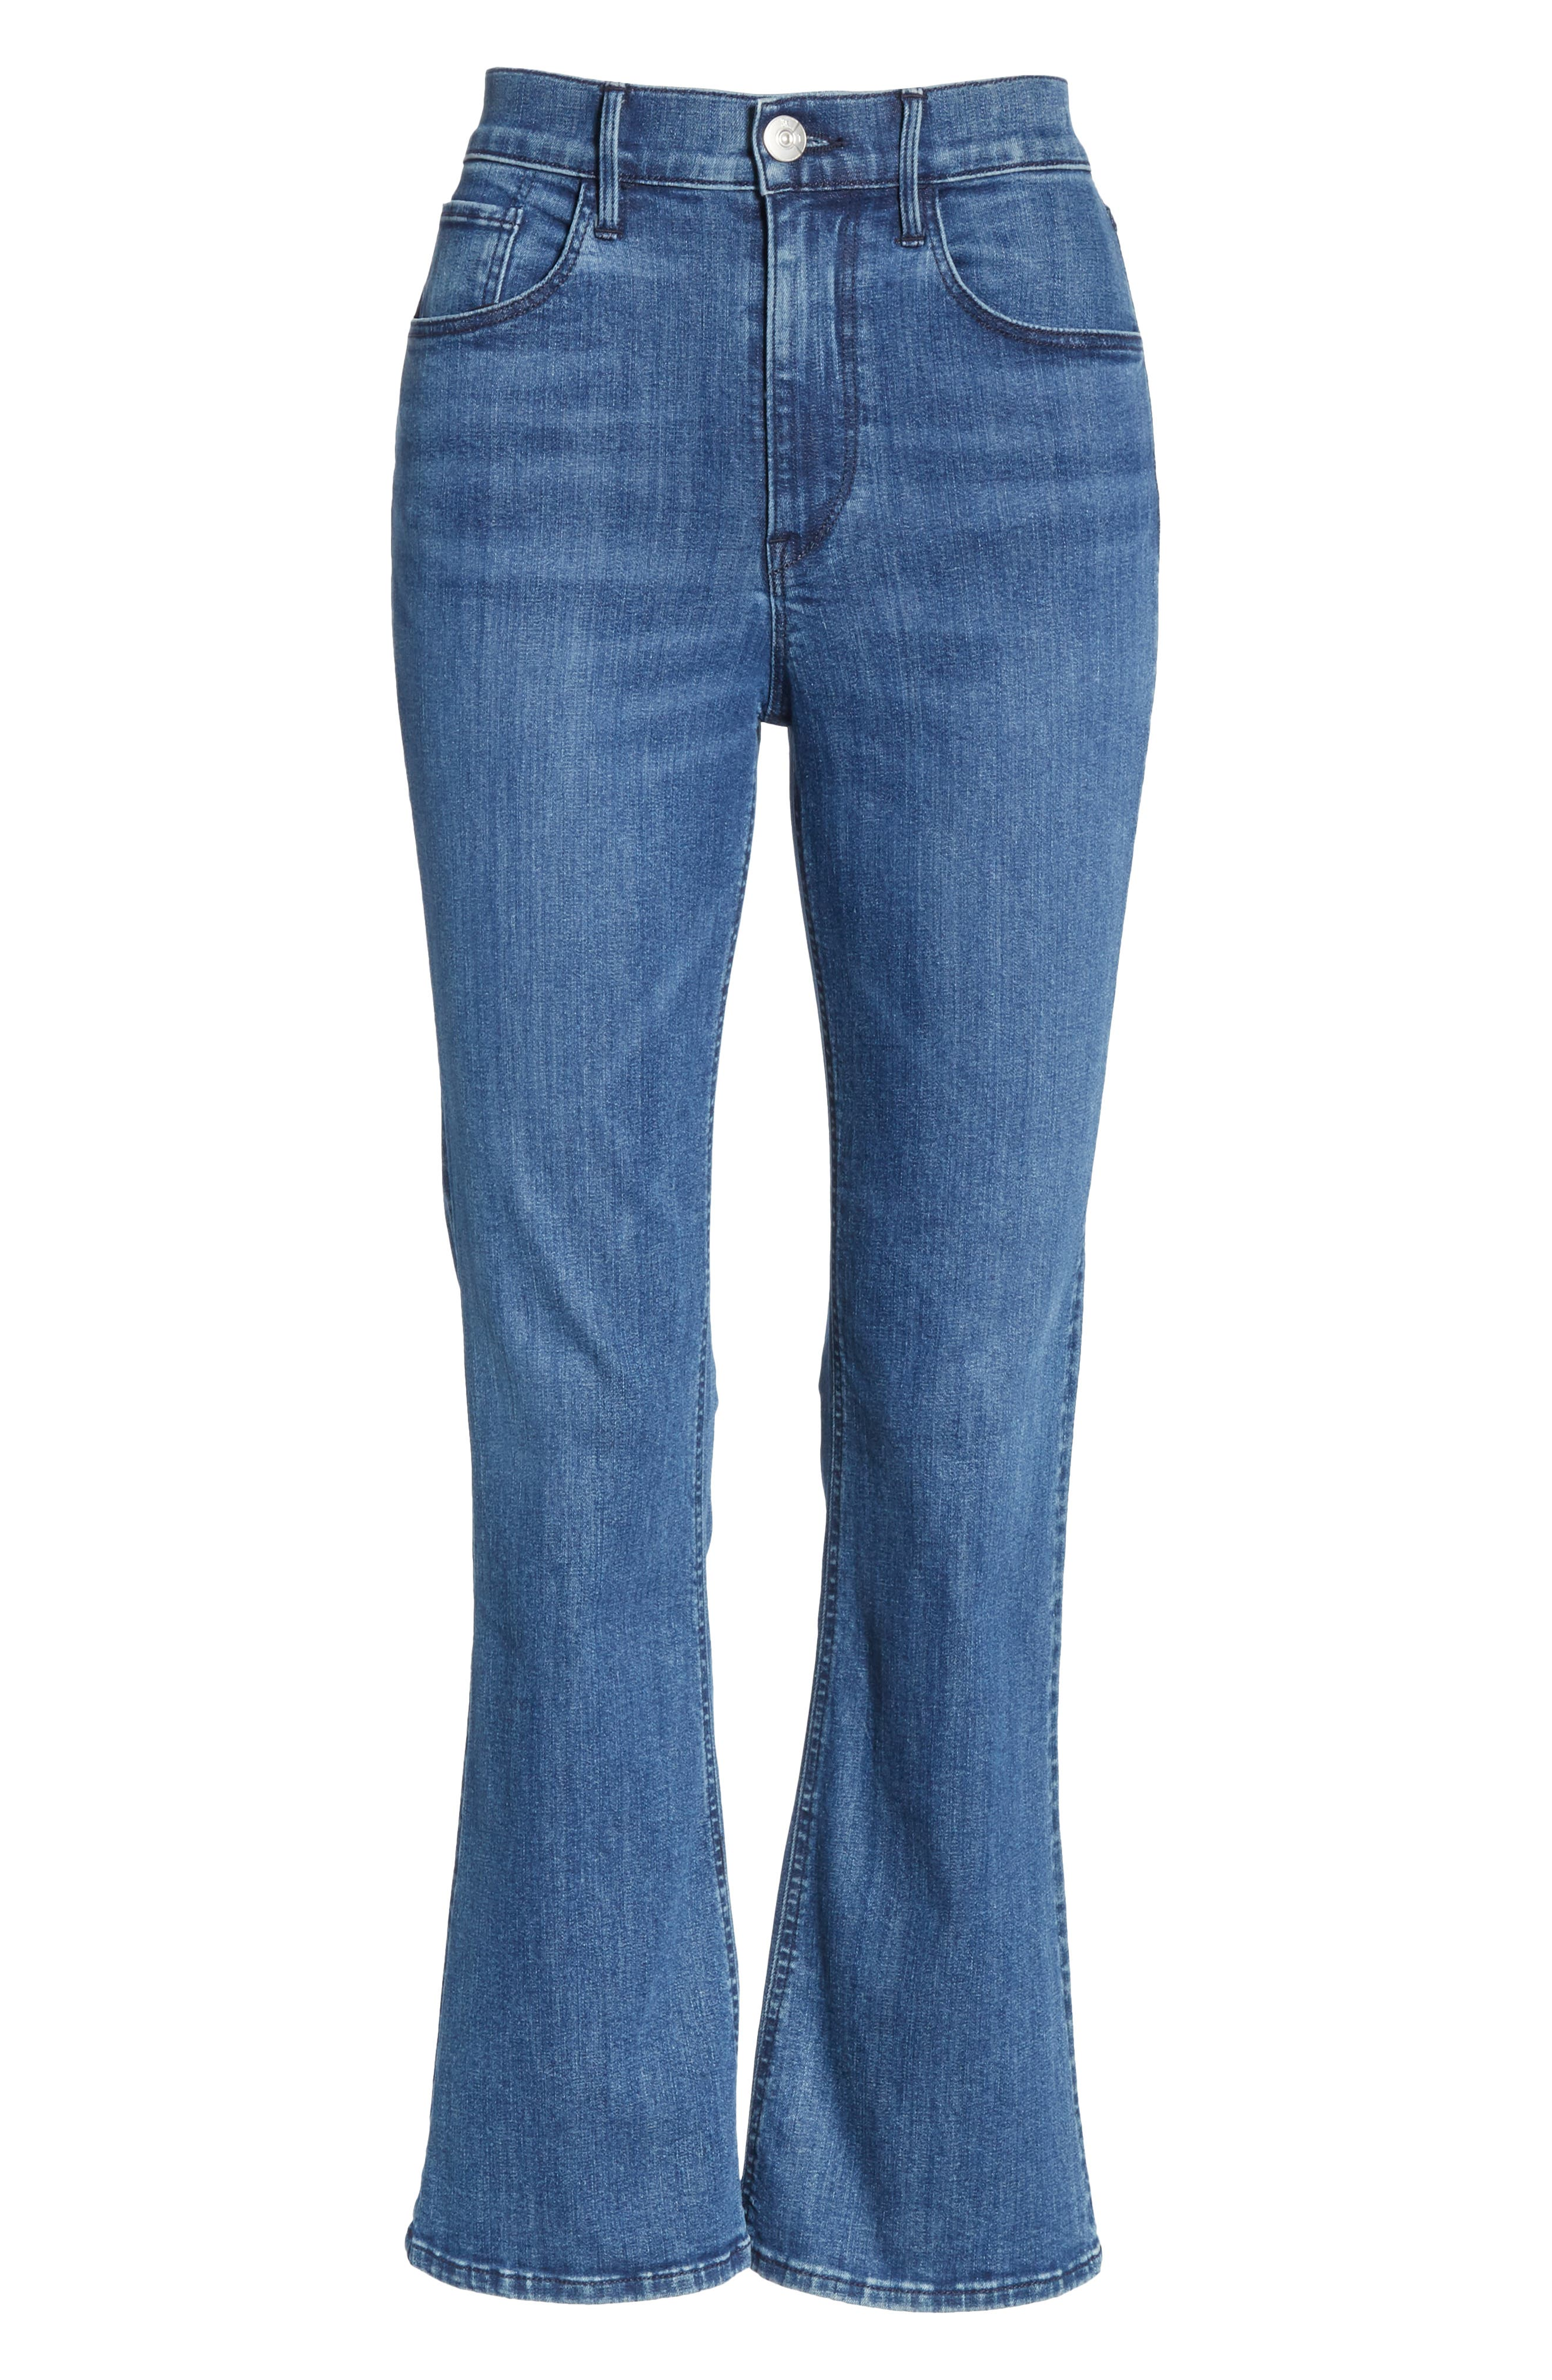 Crop Bootcut Jeans,                             Alternate thumbnail 7, color,                             ADRIANA